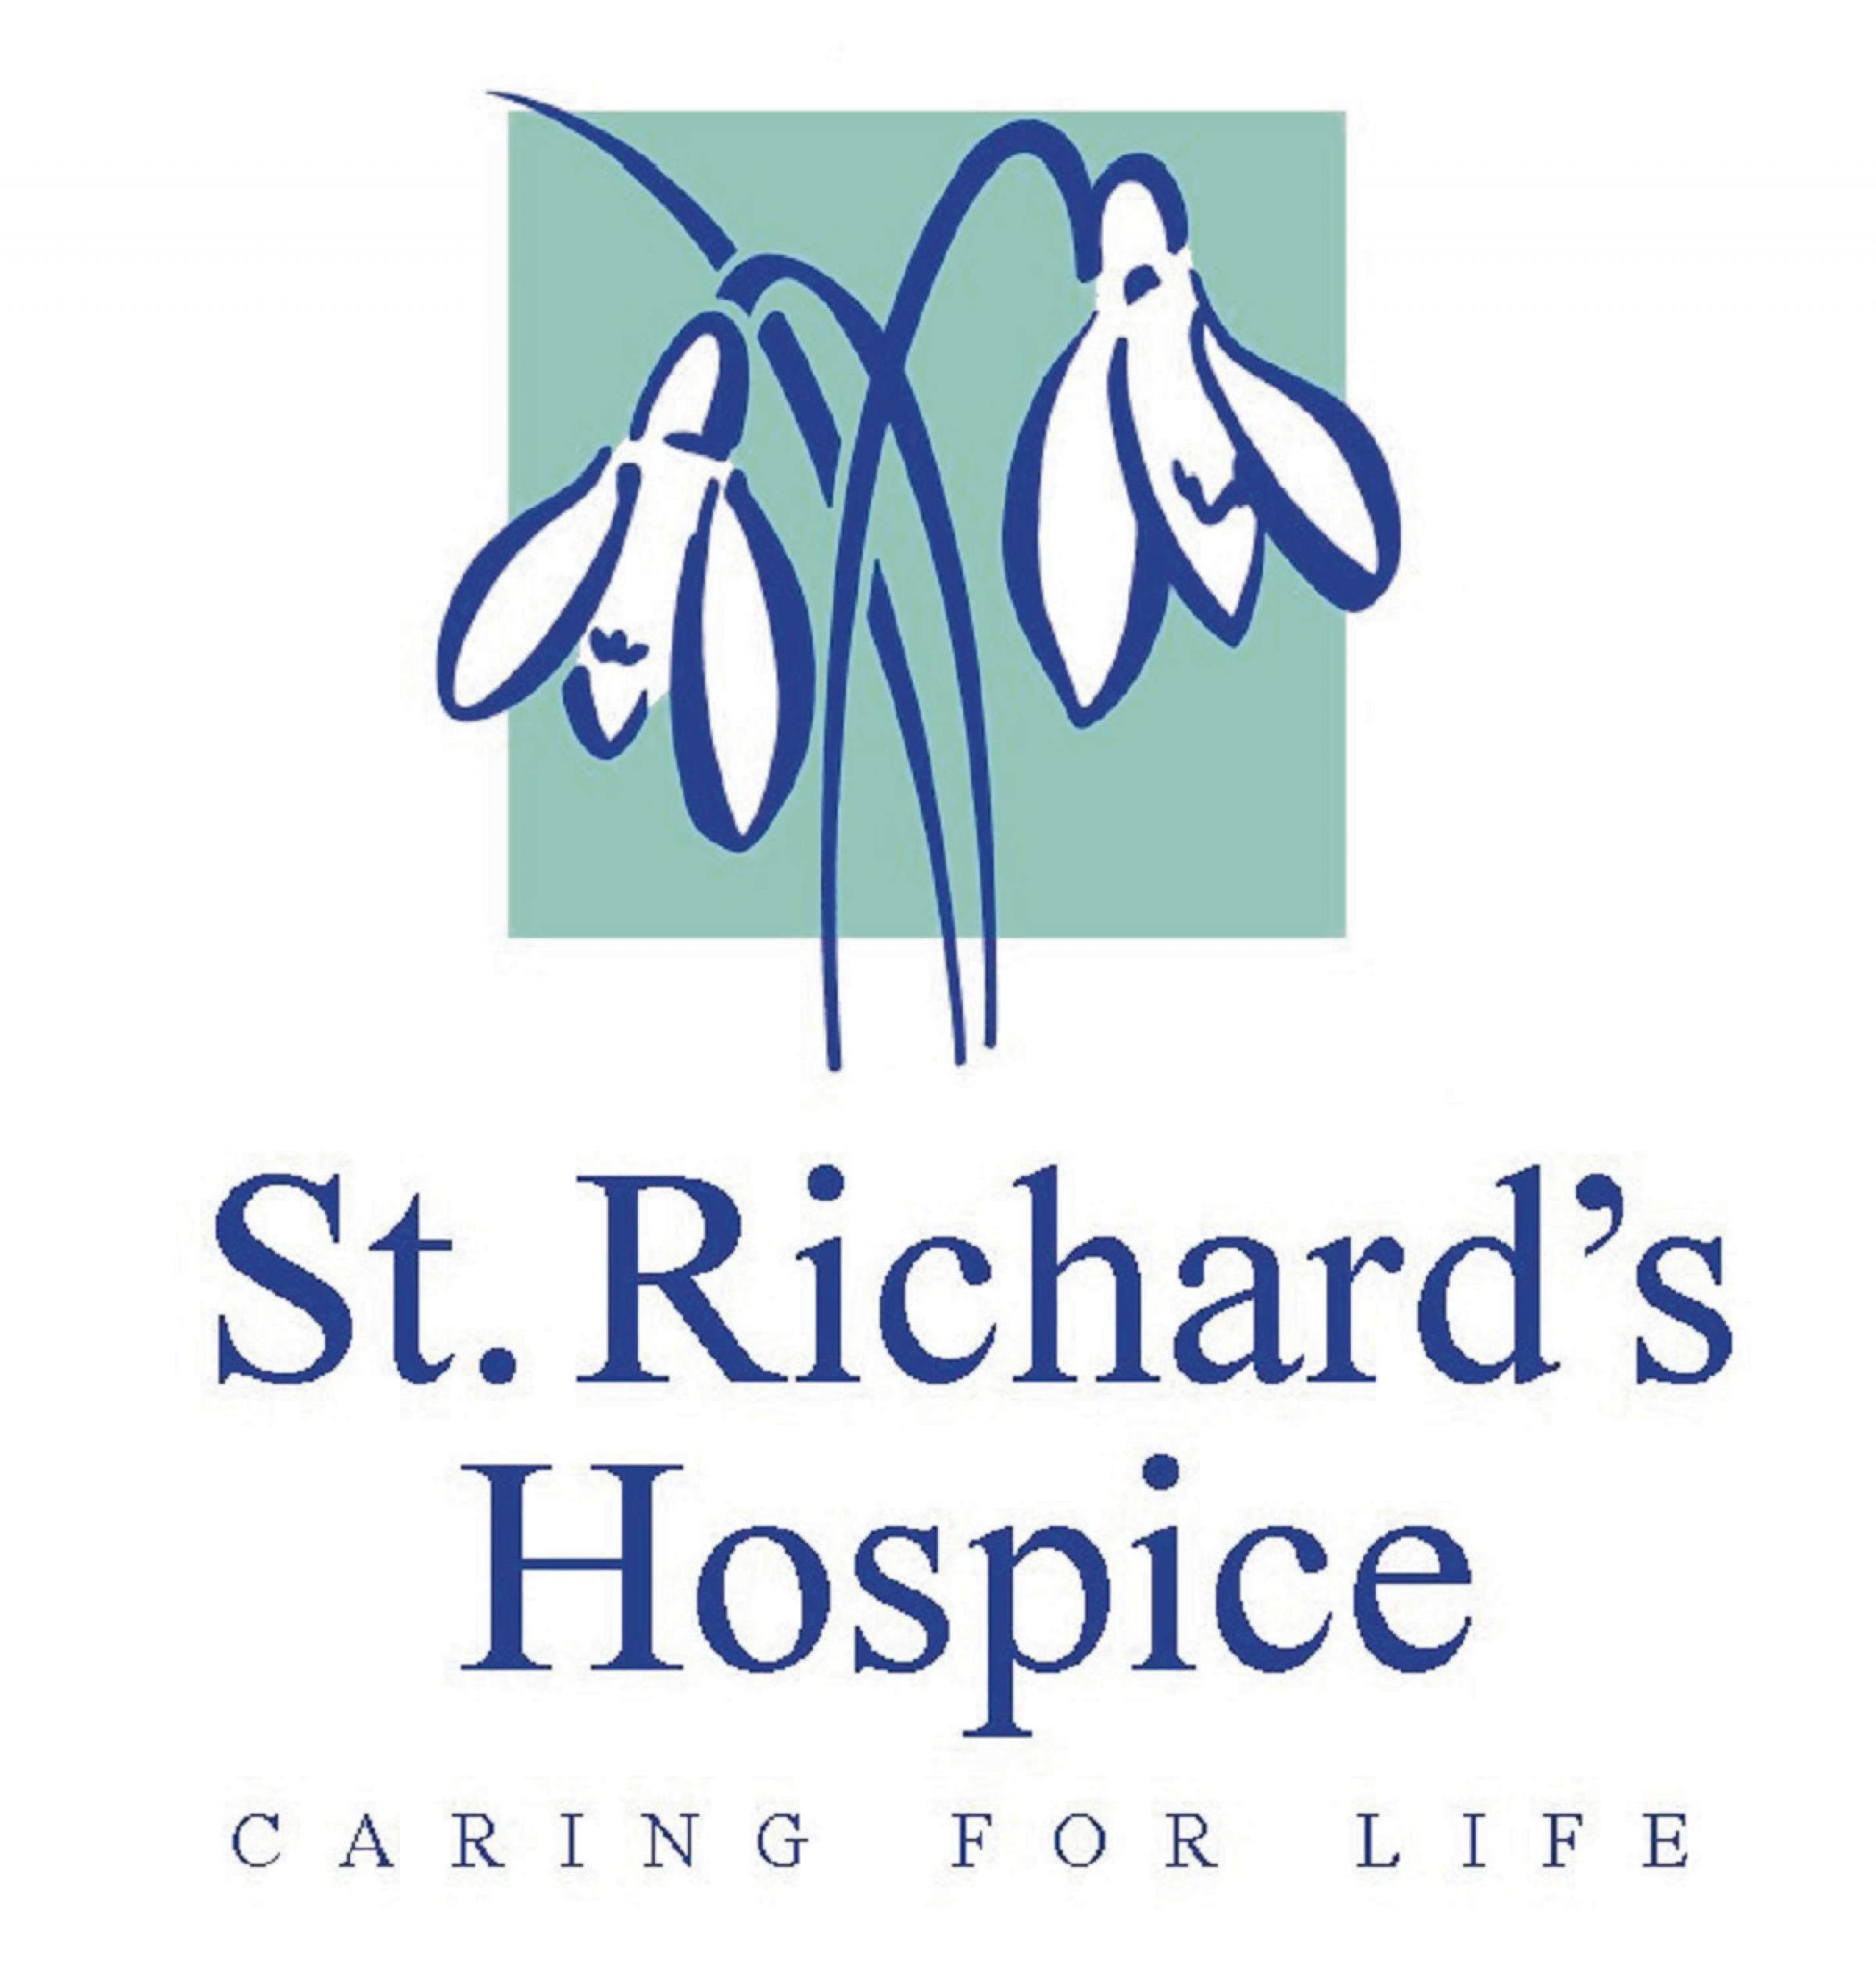 Tea dance in aid of St Richard's Hospice next month